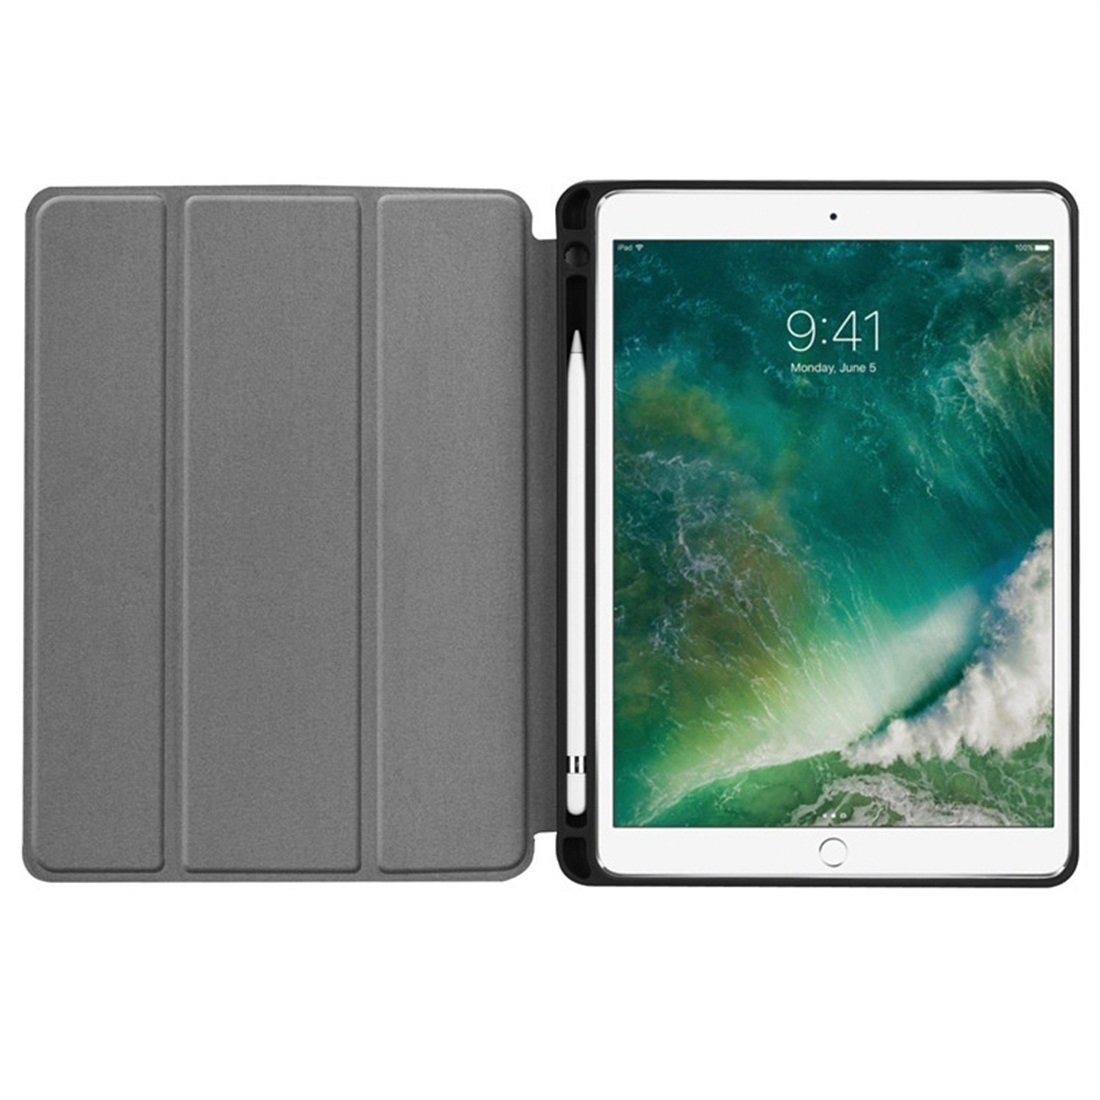 Custer Texture Leather iPad Air 3 Case (10.5 Inch)/ iPad Air (2019), with Pen Holder (Gold)